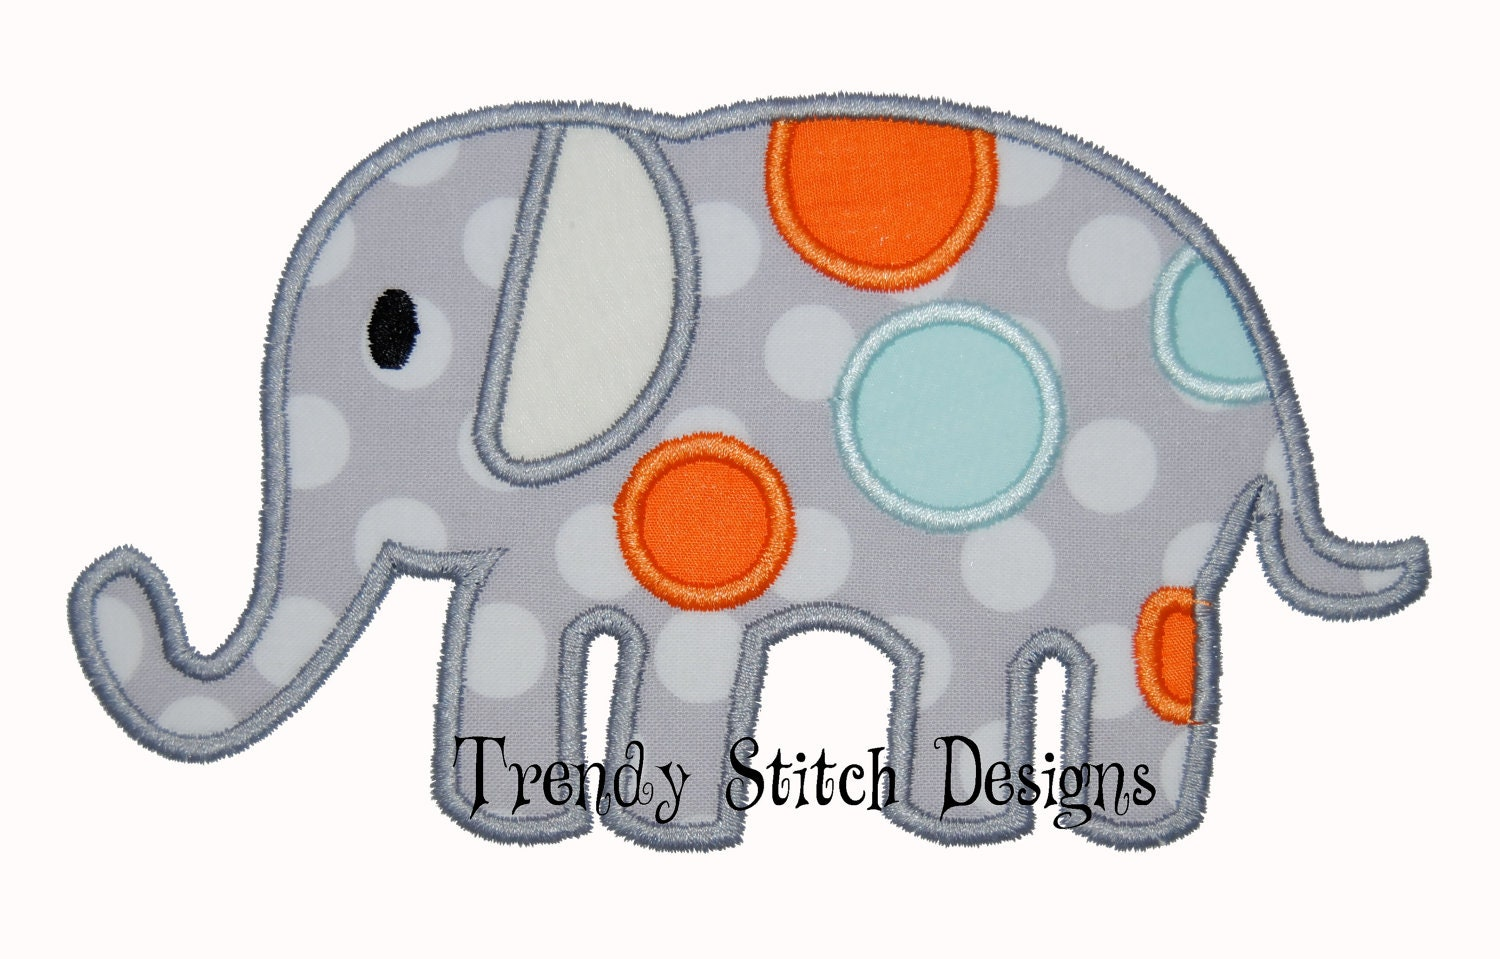 spotted elephant applique design machine embroidery design. Black Bedroom Furniture Sets. Home Design Ideas